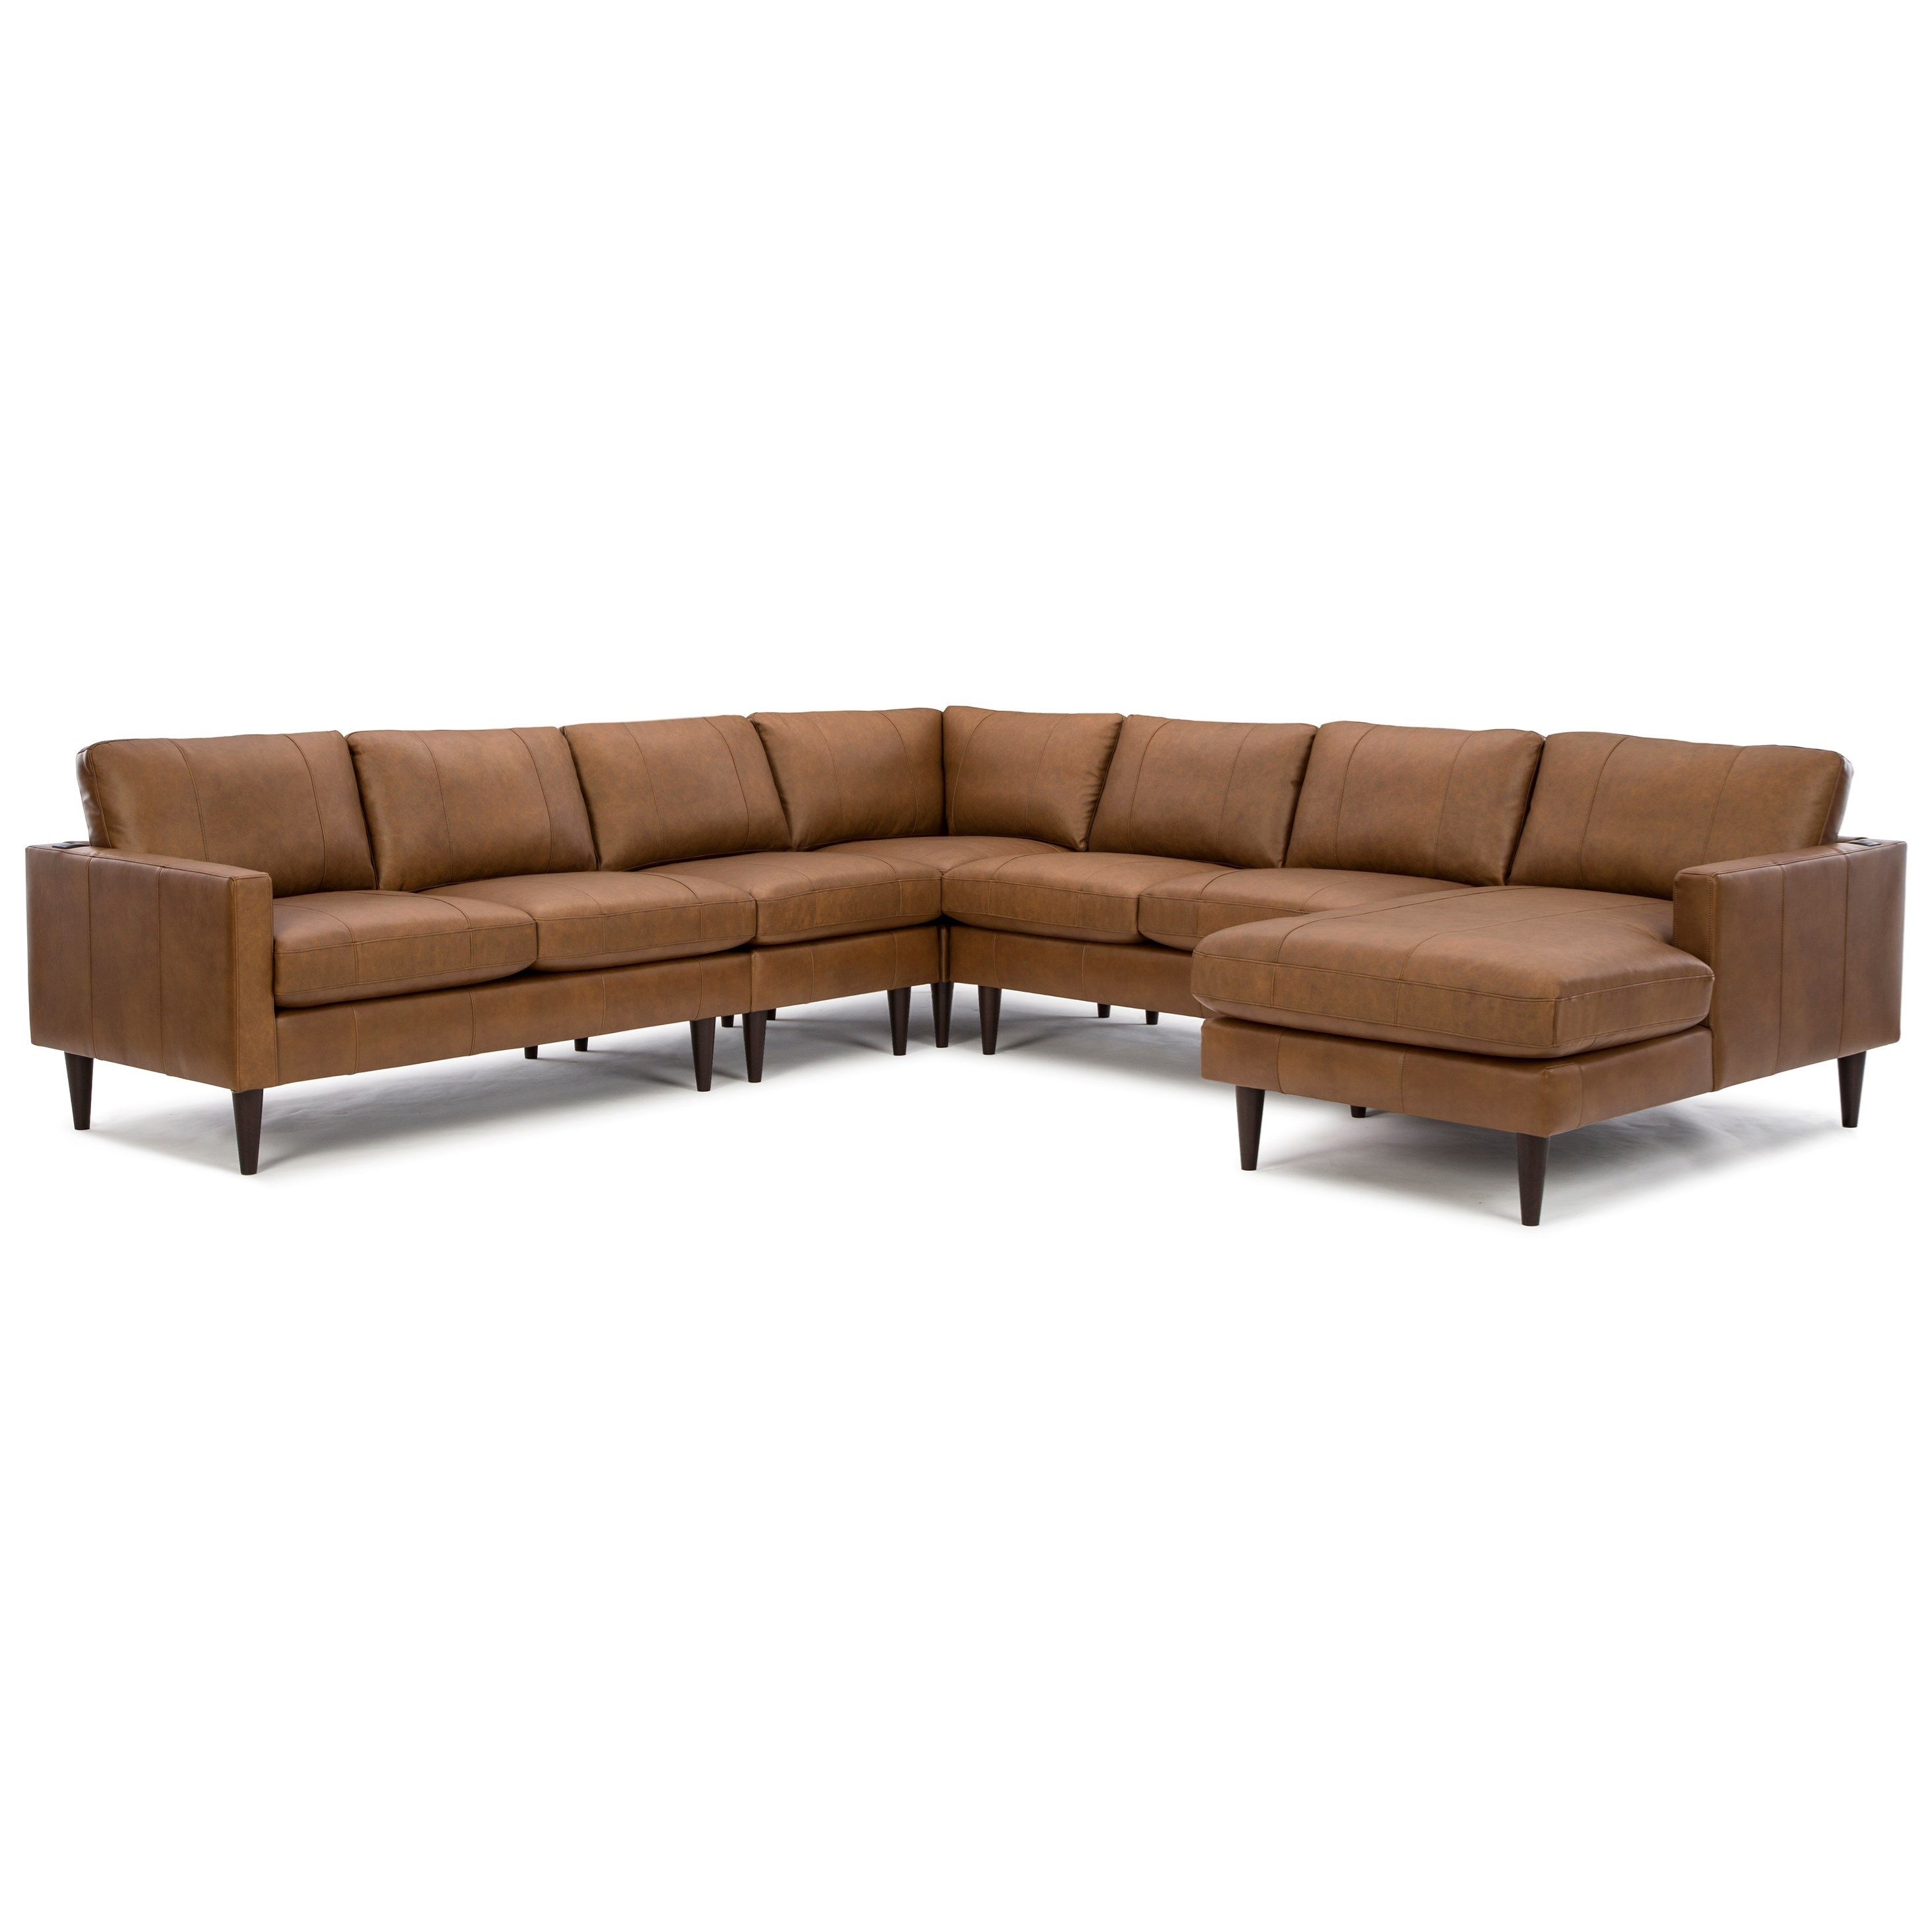 Trafton 6-Seat Sectional Sofa w/ RAF Chaise by Best Home Furnishings at Baer's Furniture